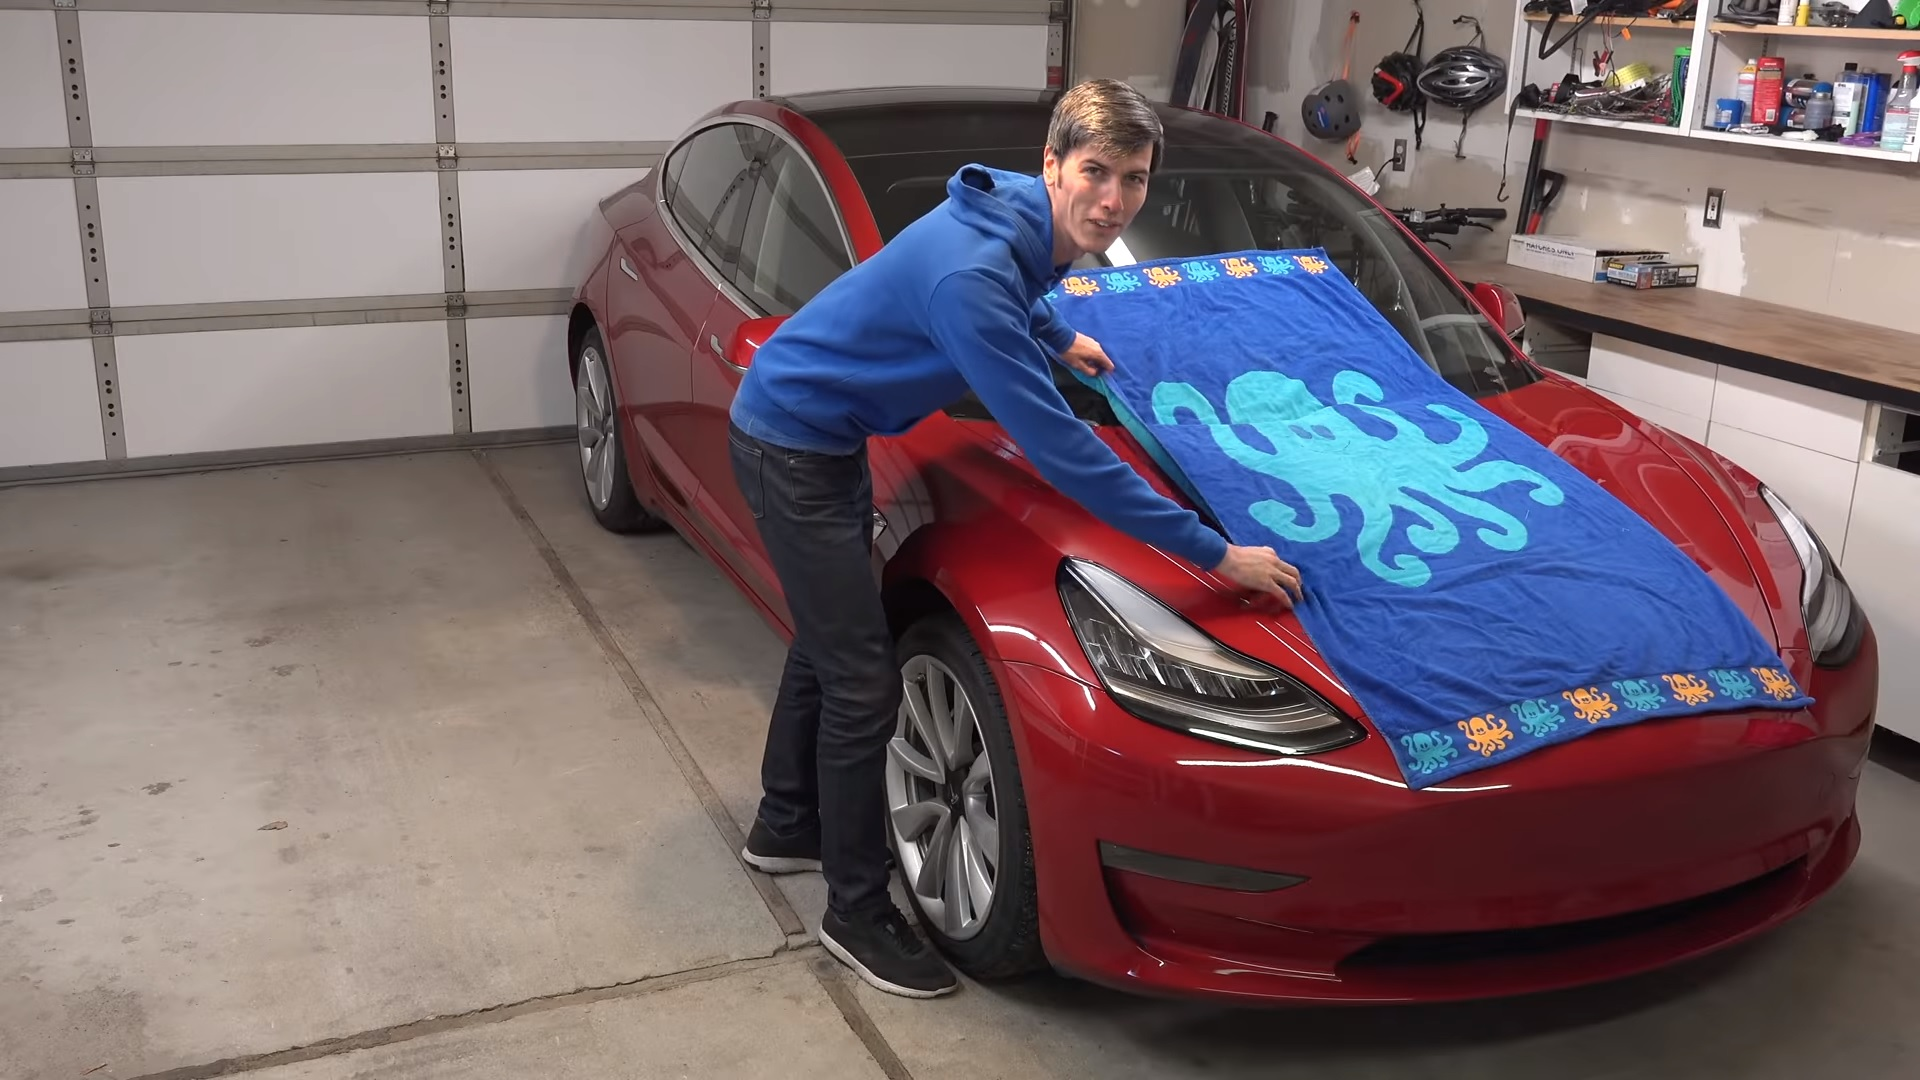 If You Have Ordered Or Will Order A 2019 Tesla Model 3, Here Are The